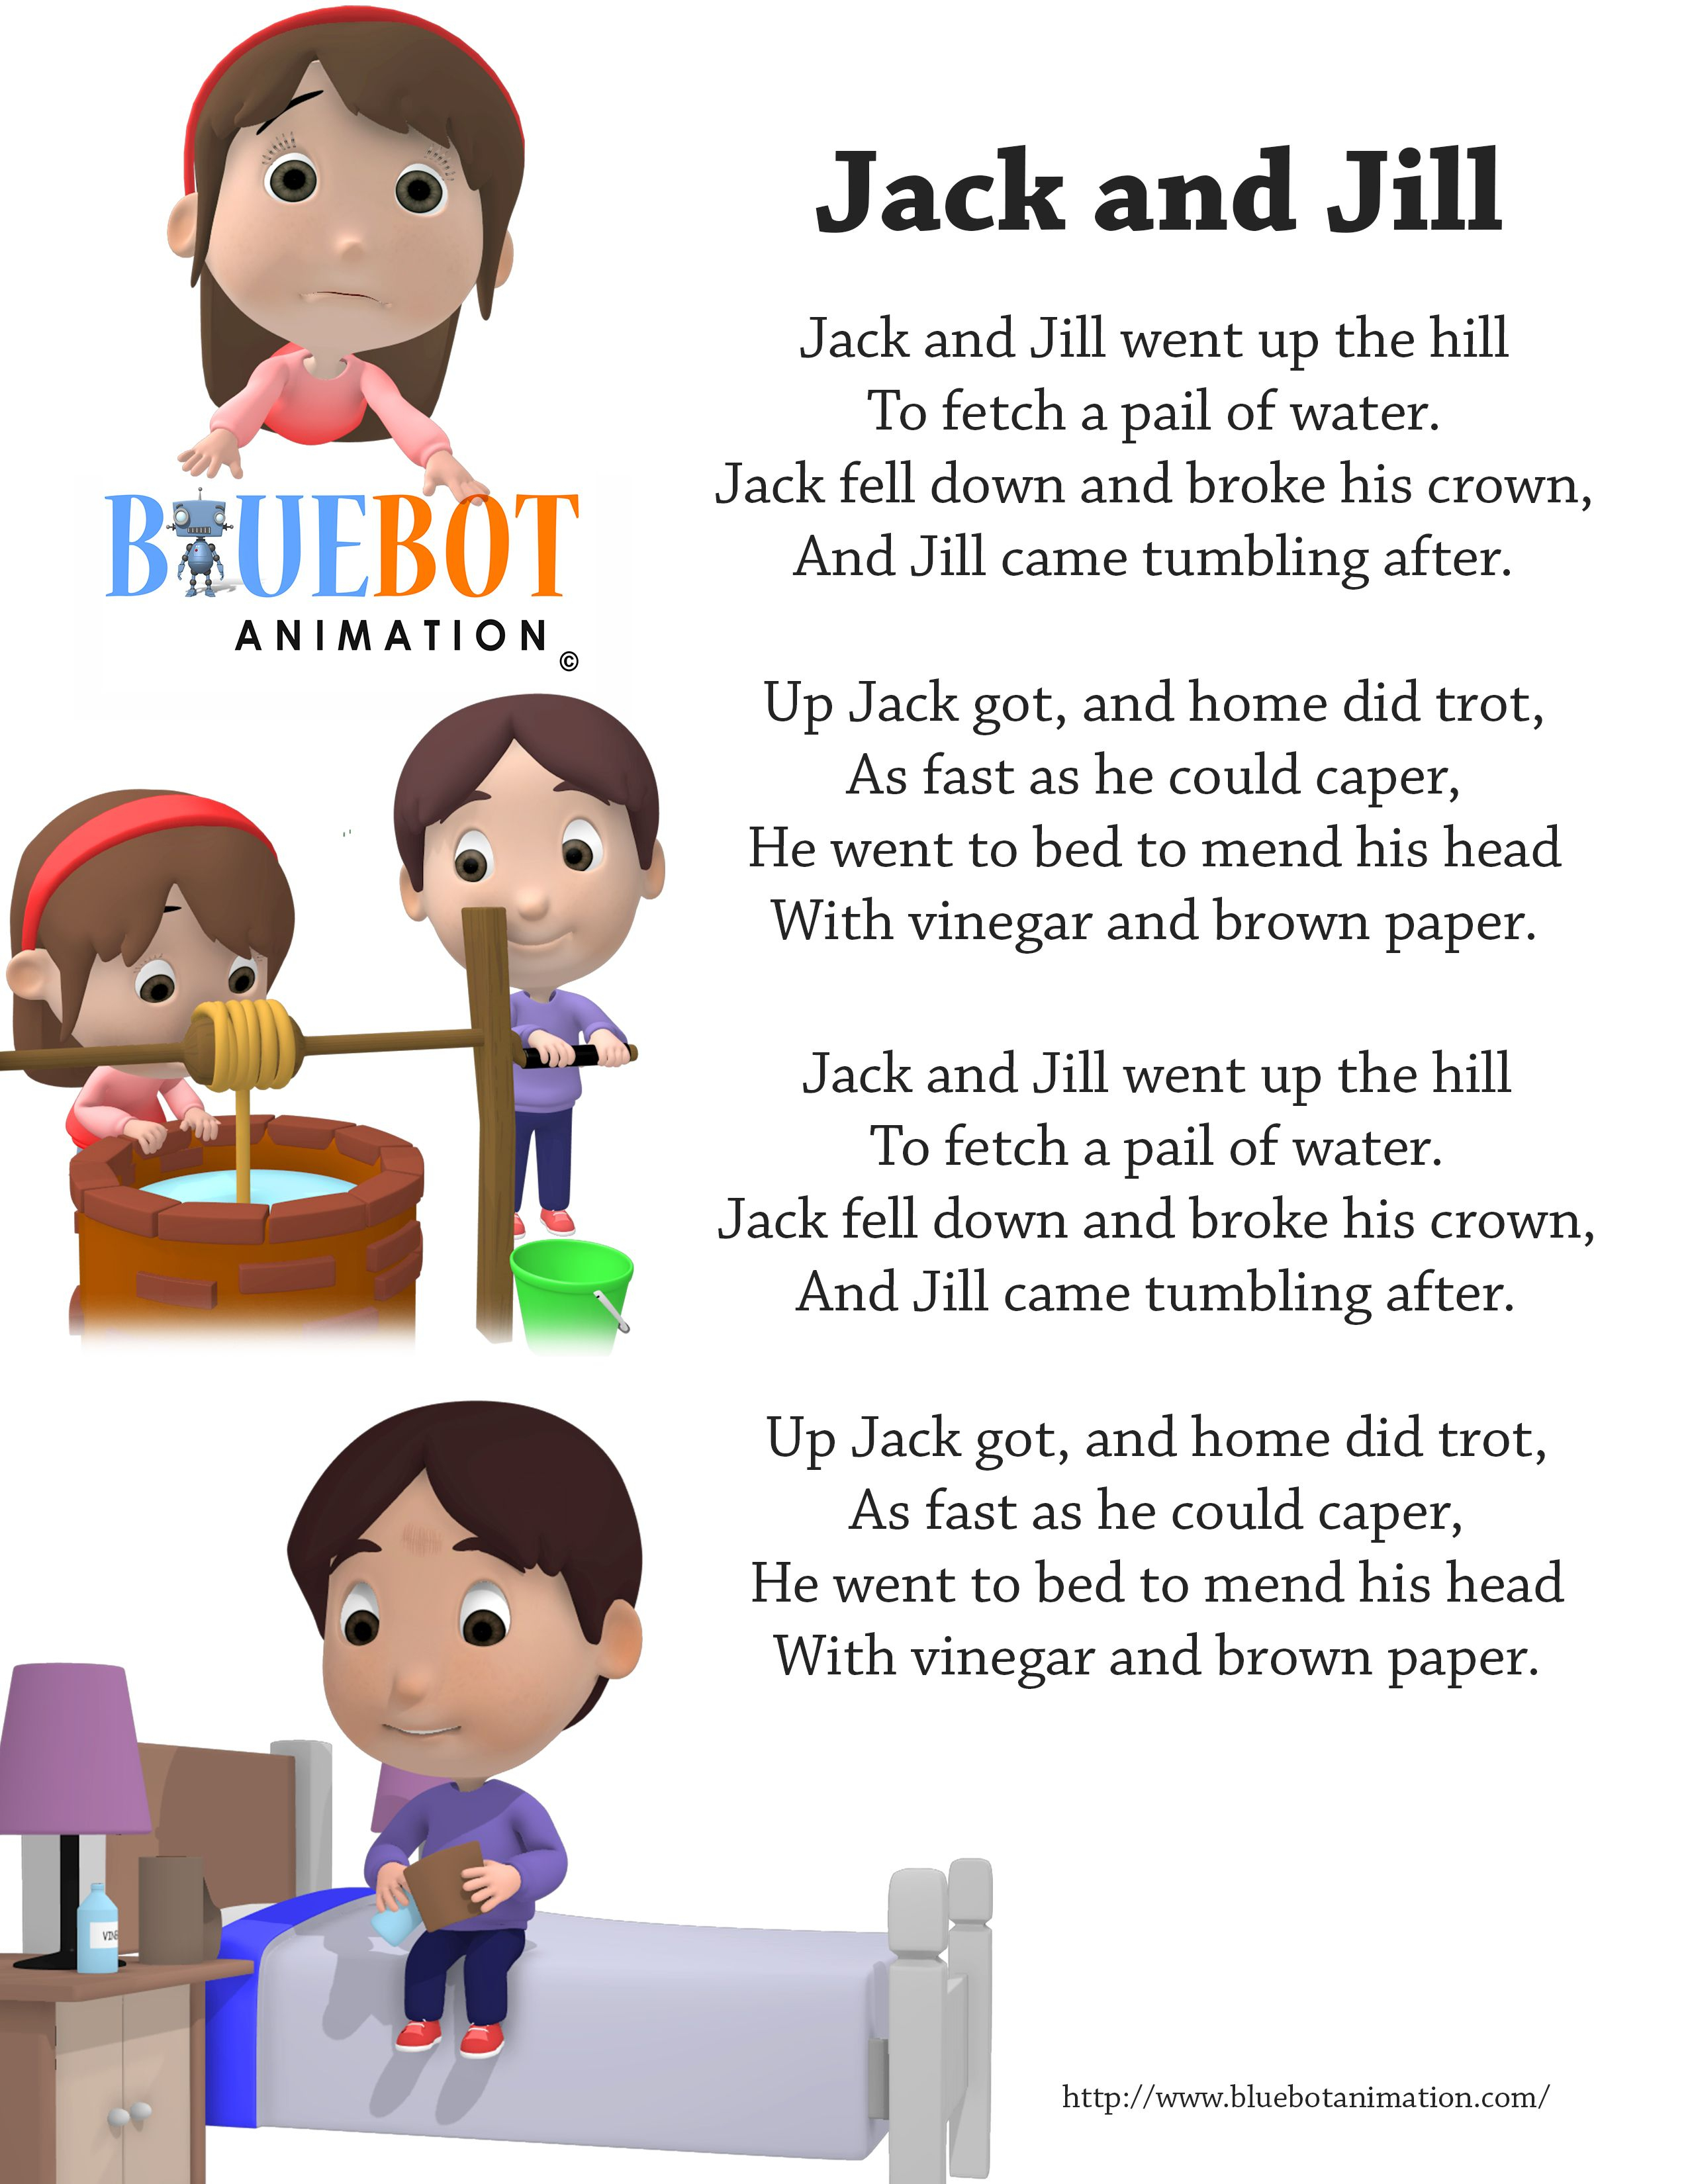 Jack And Jill Nursery Rhyme Lyrics Free Printable Nursery Rhyme - Free Printable Nursery Rhymes Songs